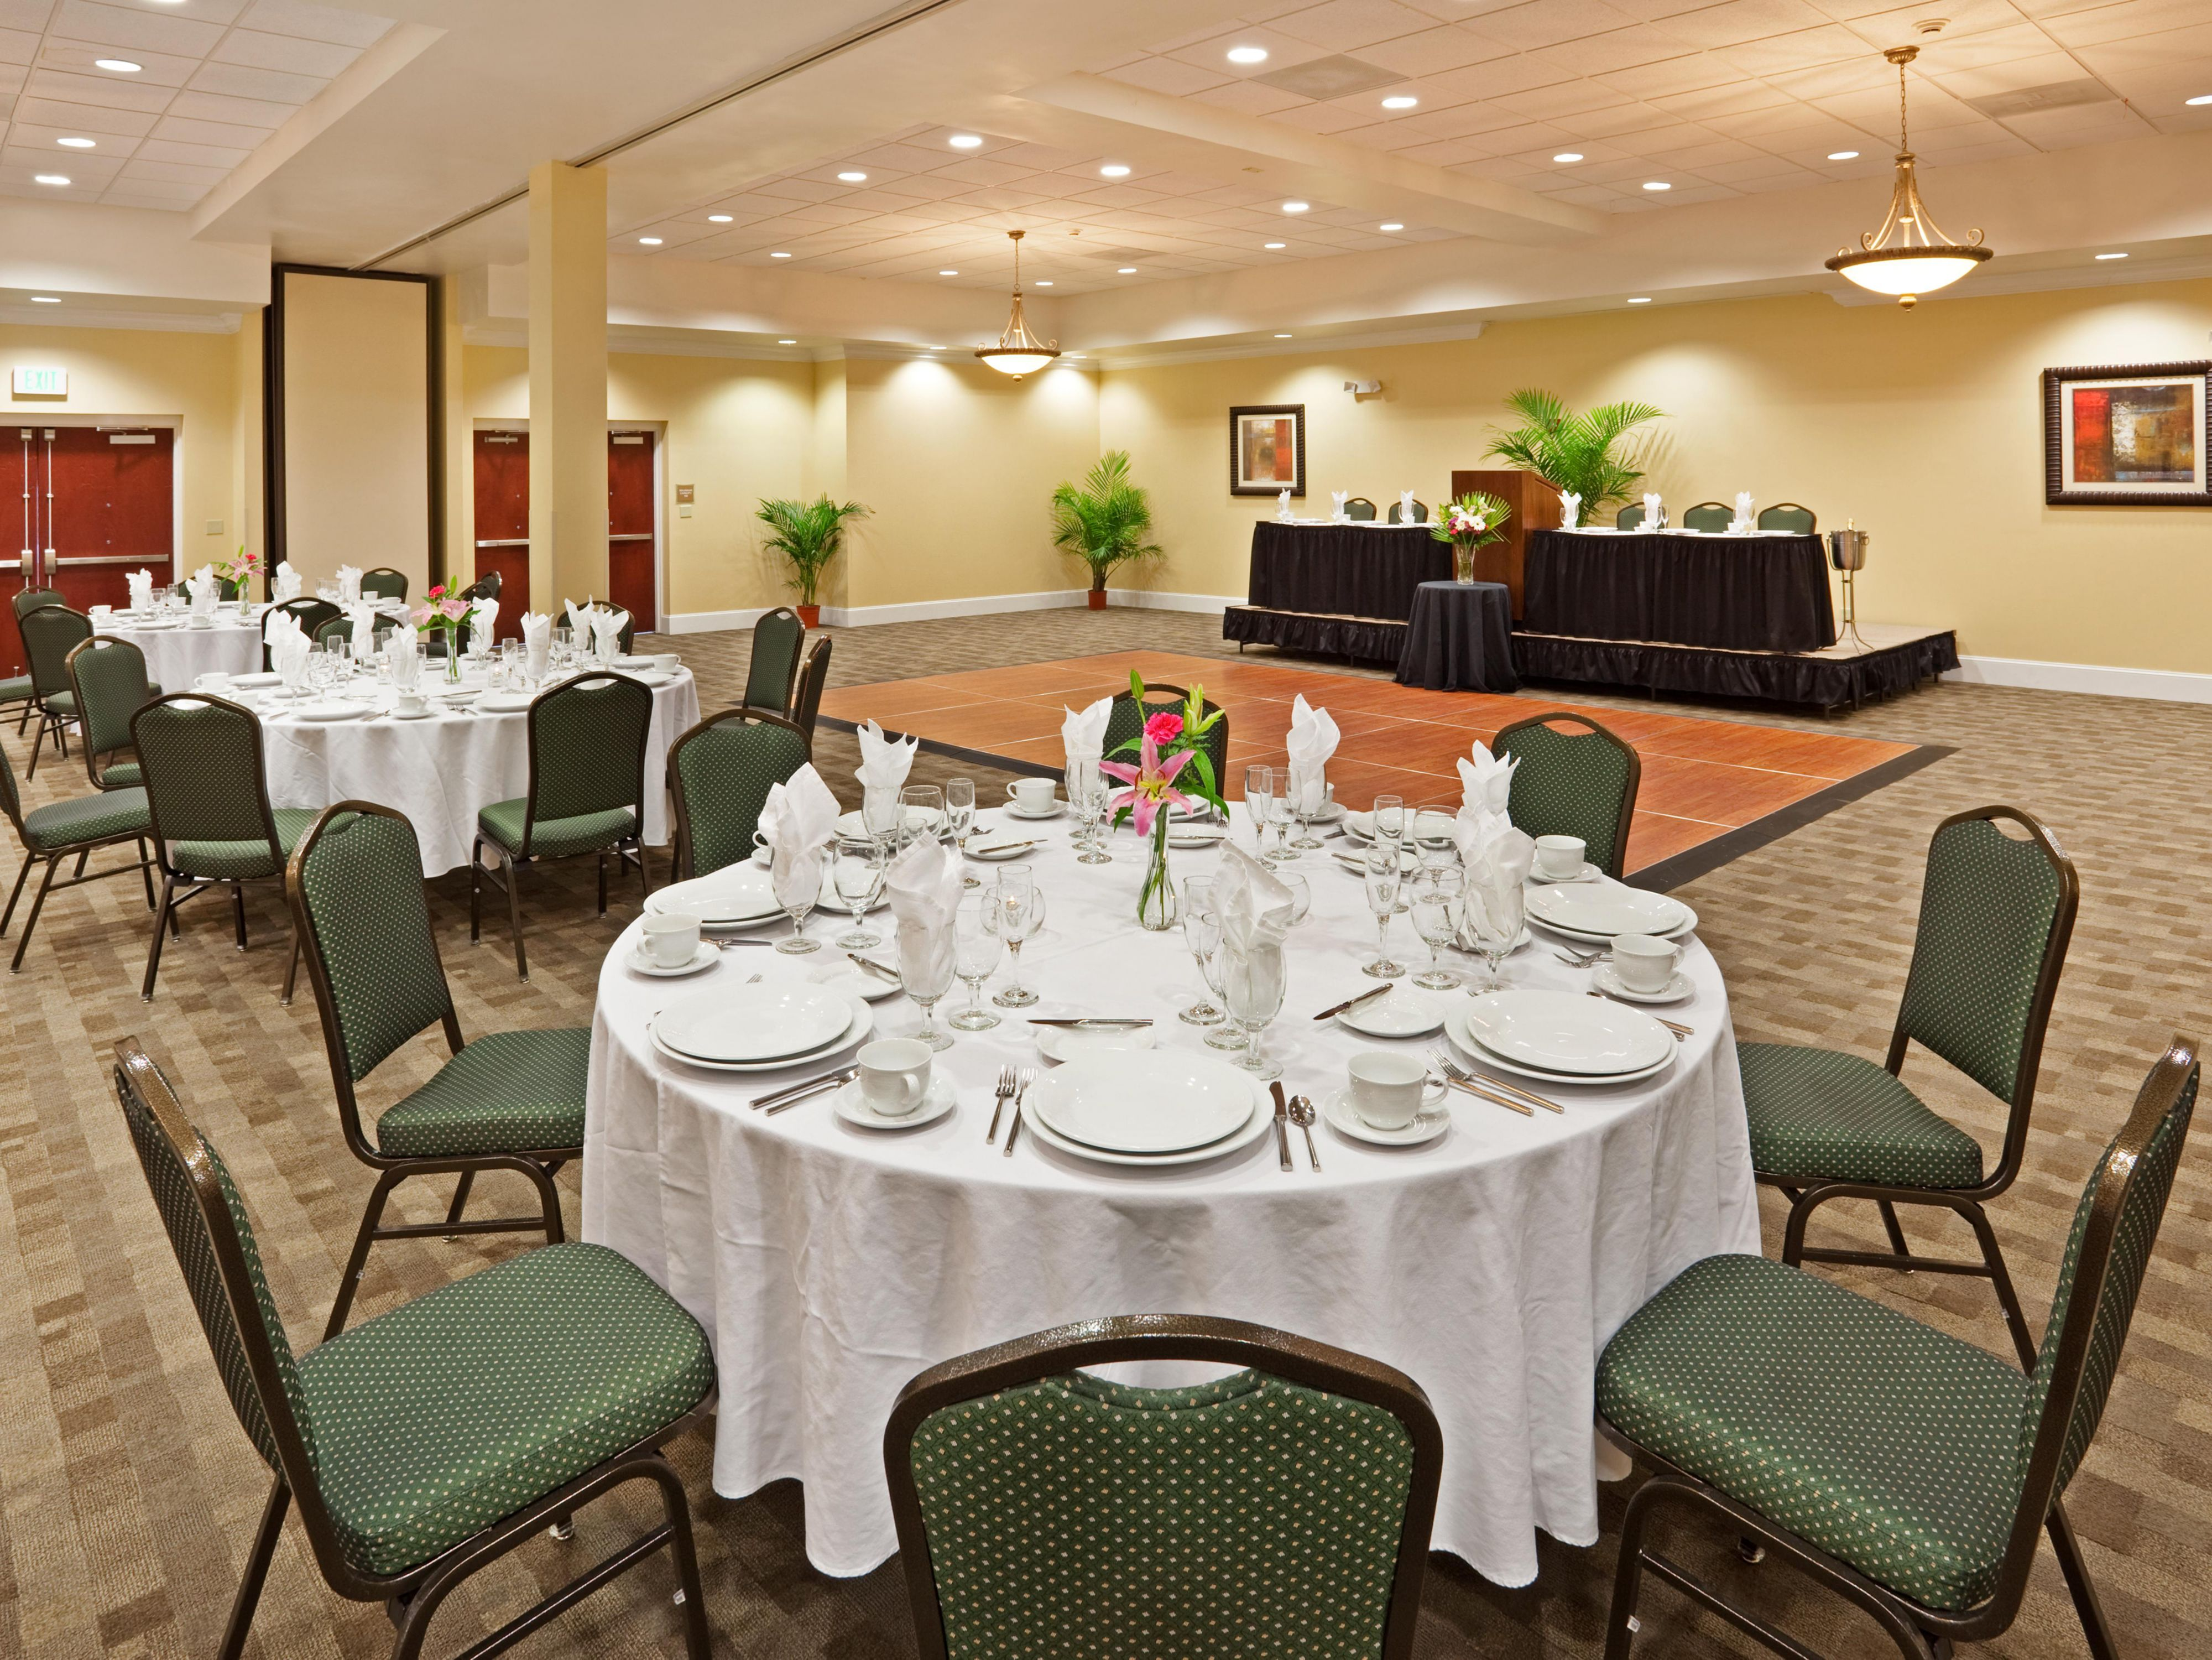 The Ballroom accommodates events up to 300 guests